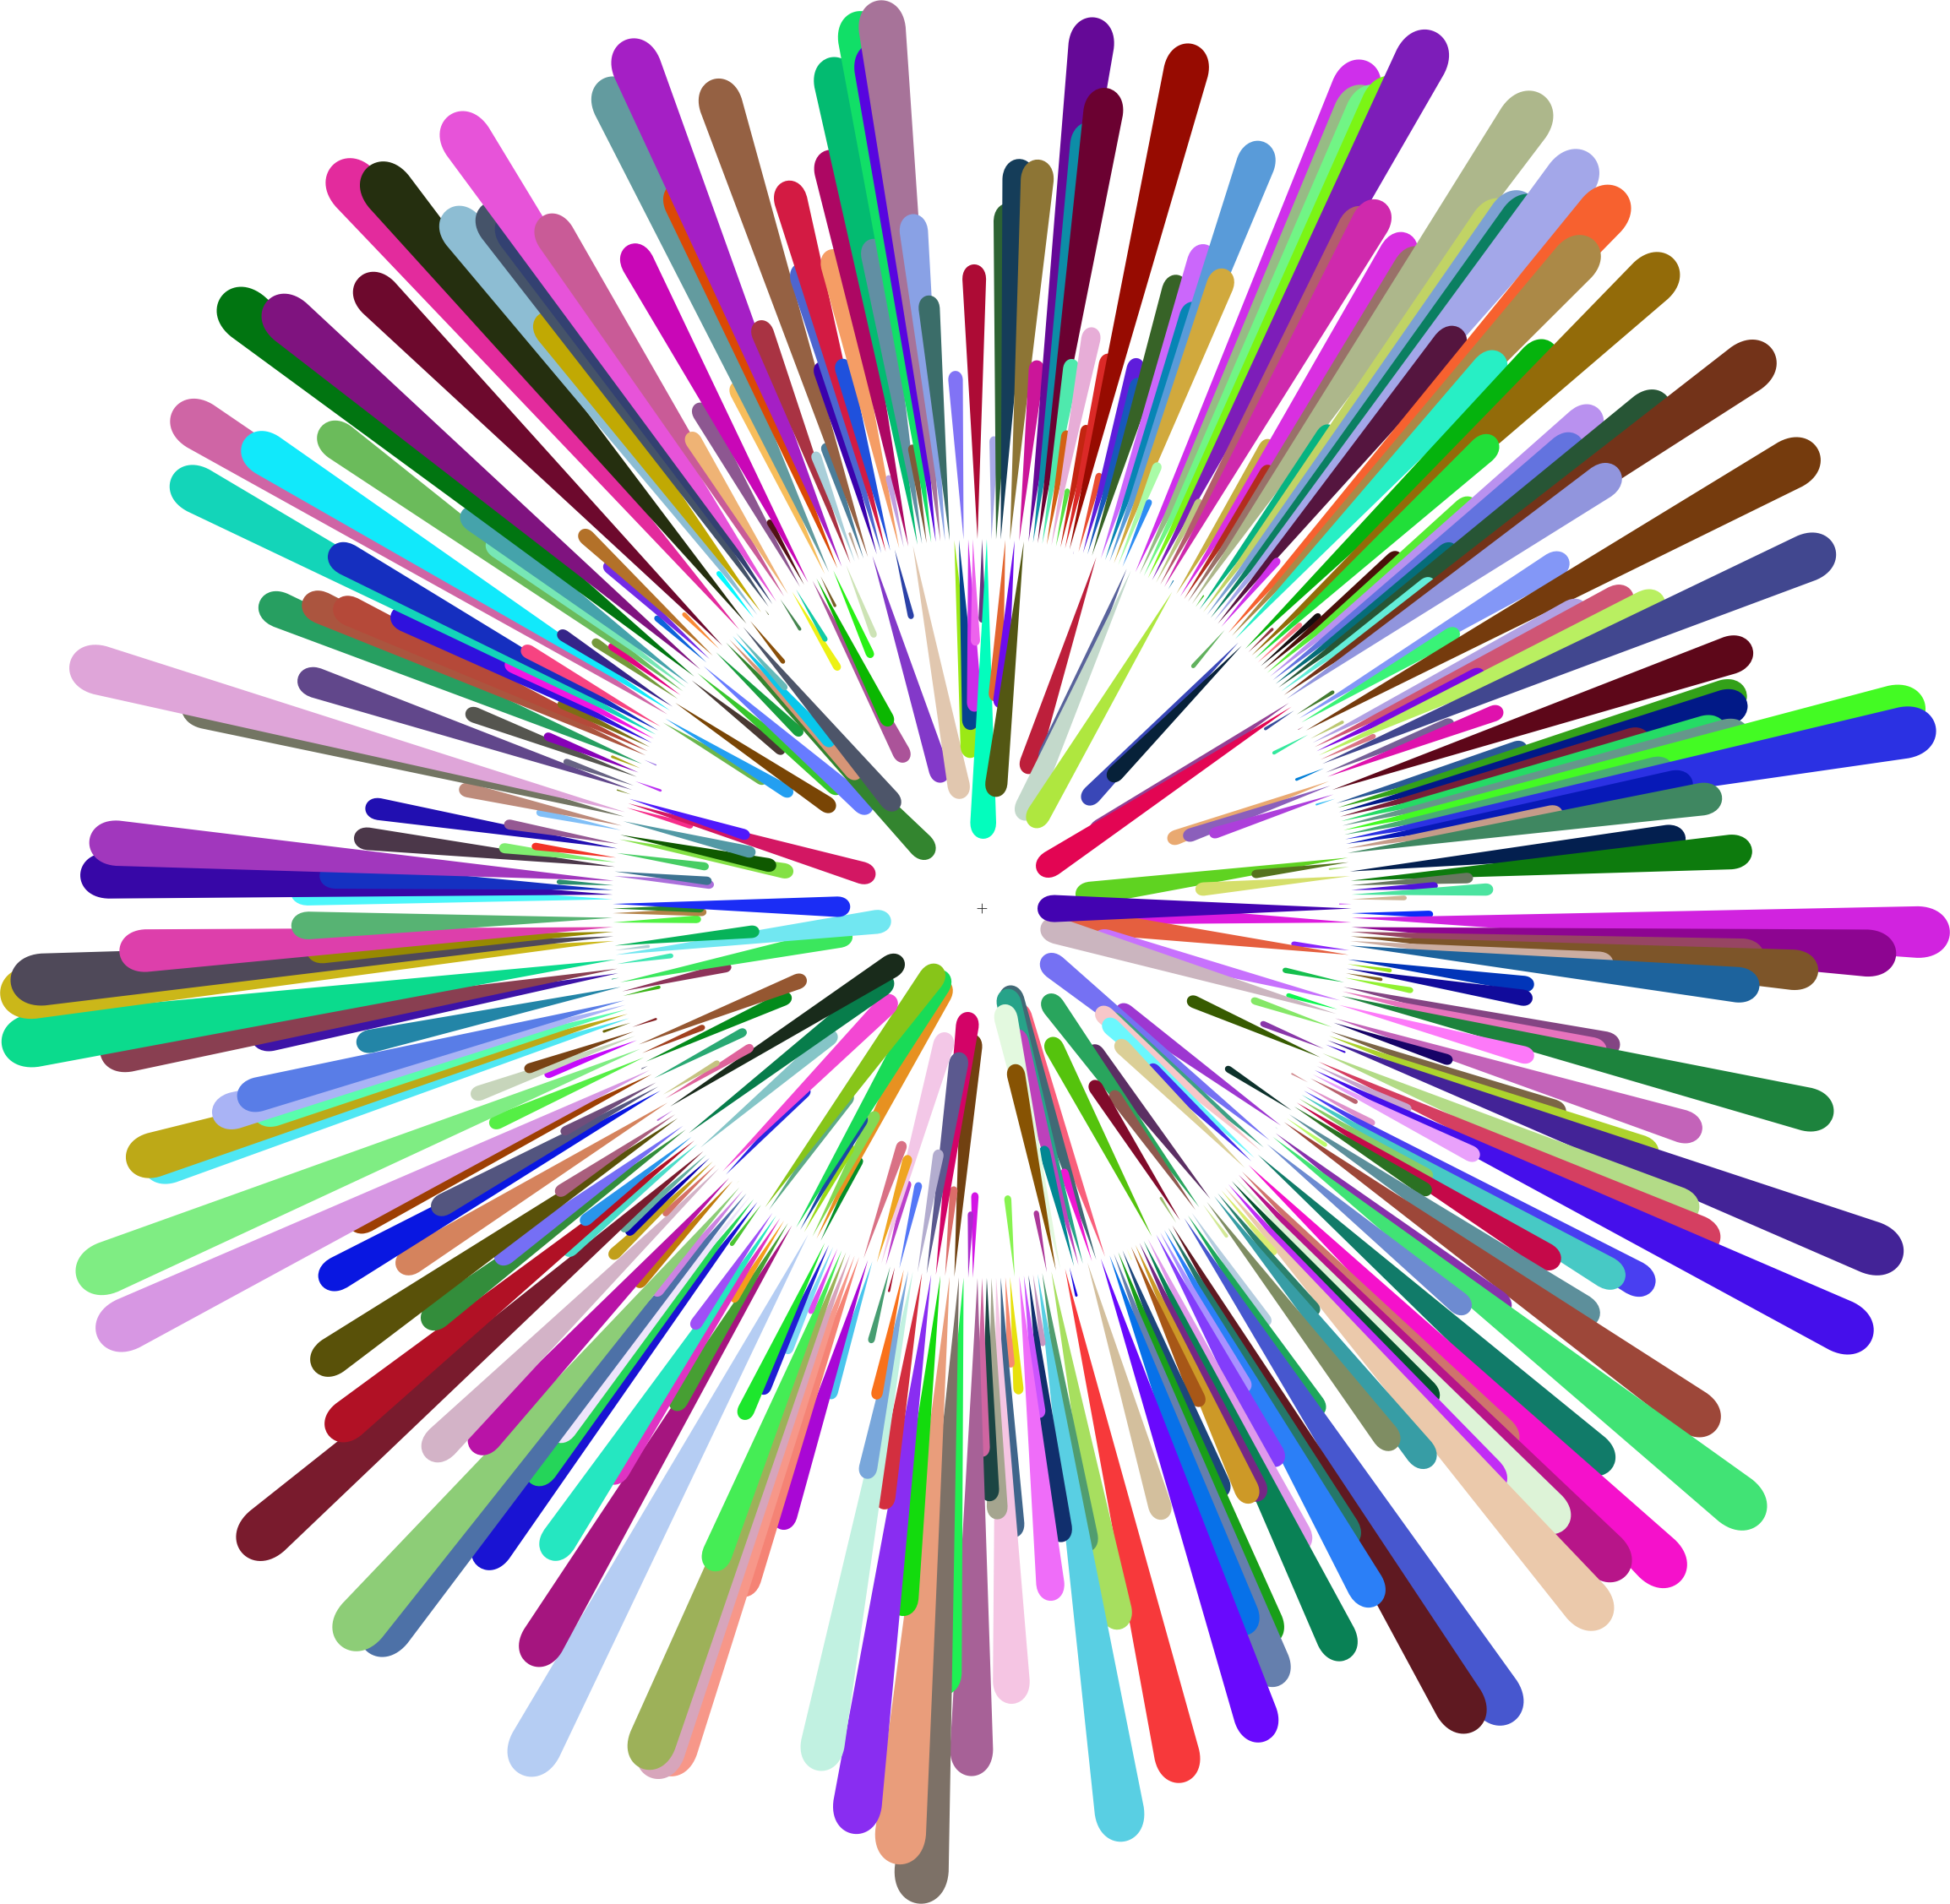 Multicultural no background big. Explosion clipart colorful explosion